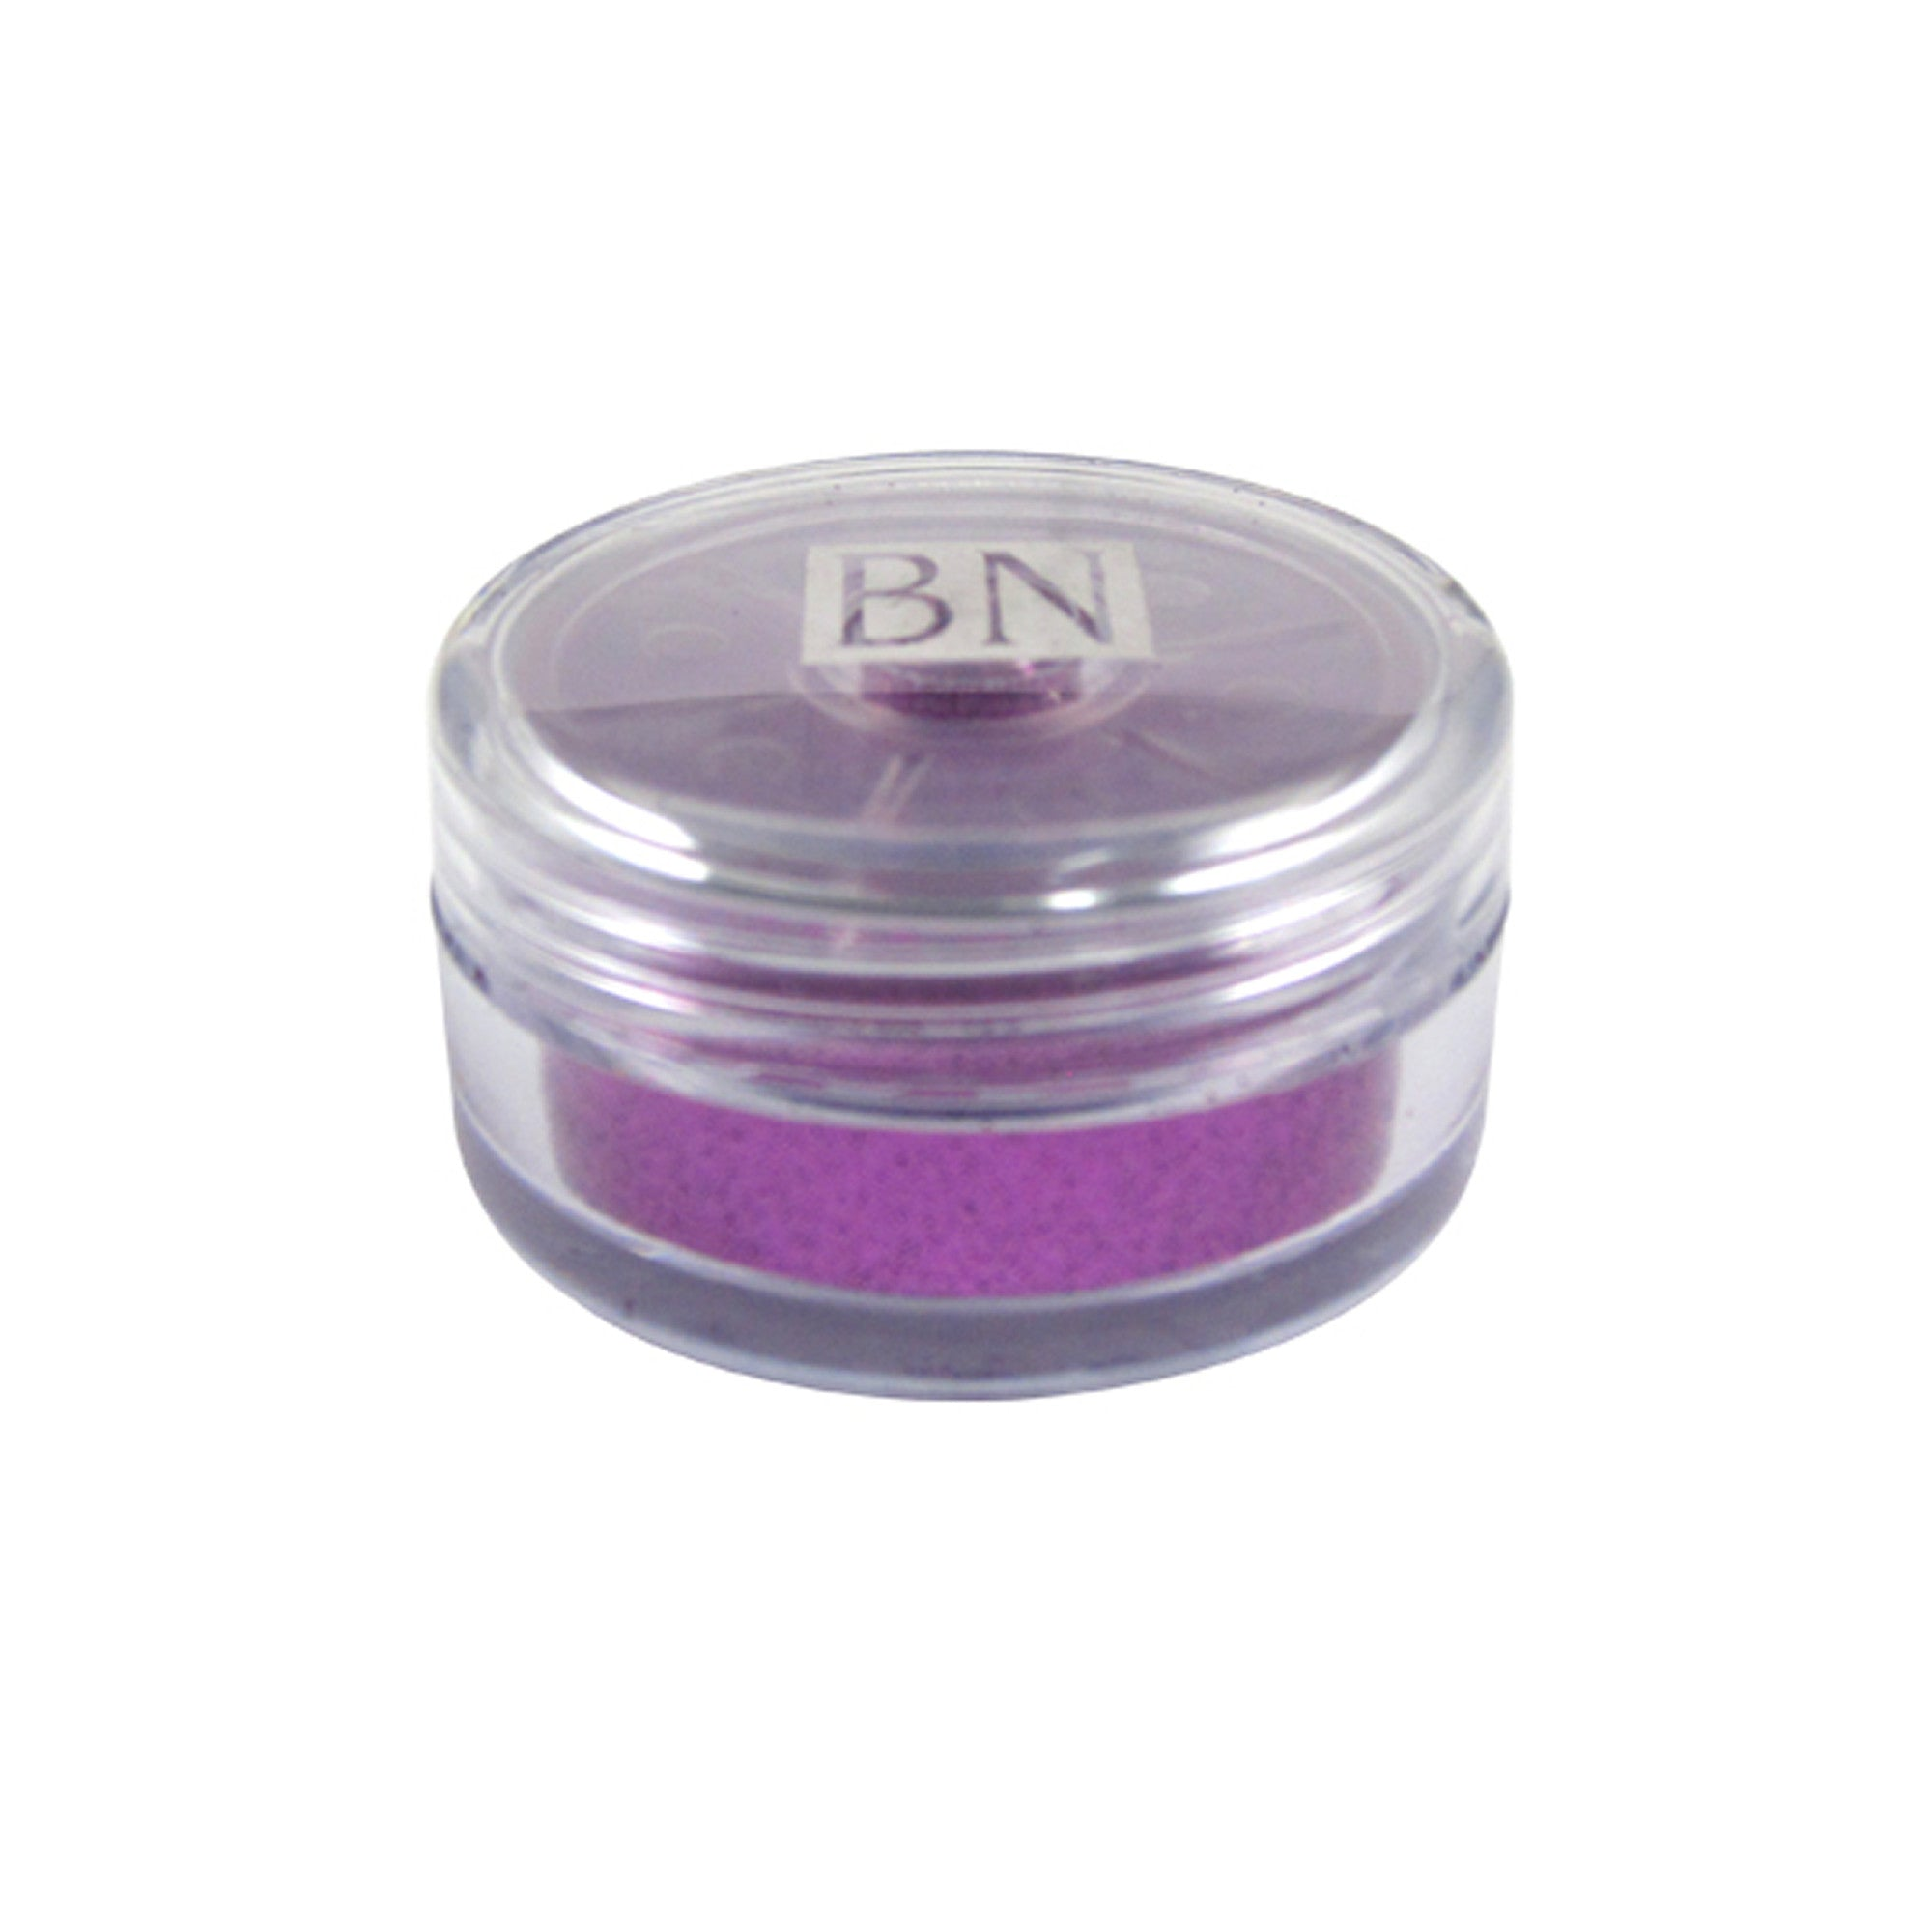 Ben Nye Sparklers Loose Glitter - Fuchsia - Red Carpet FX - Professional Makeup